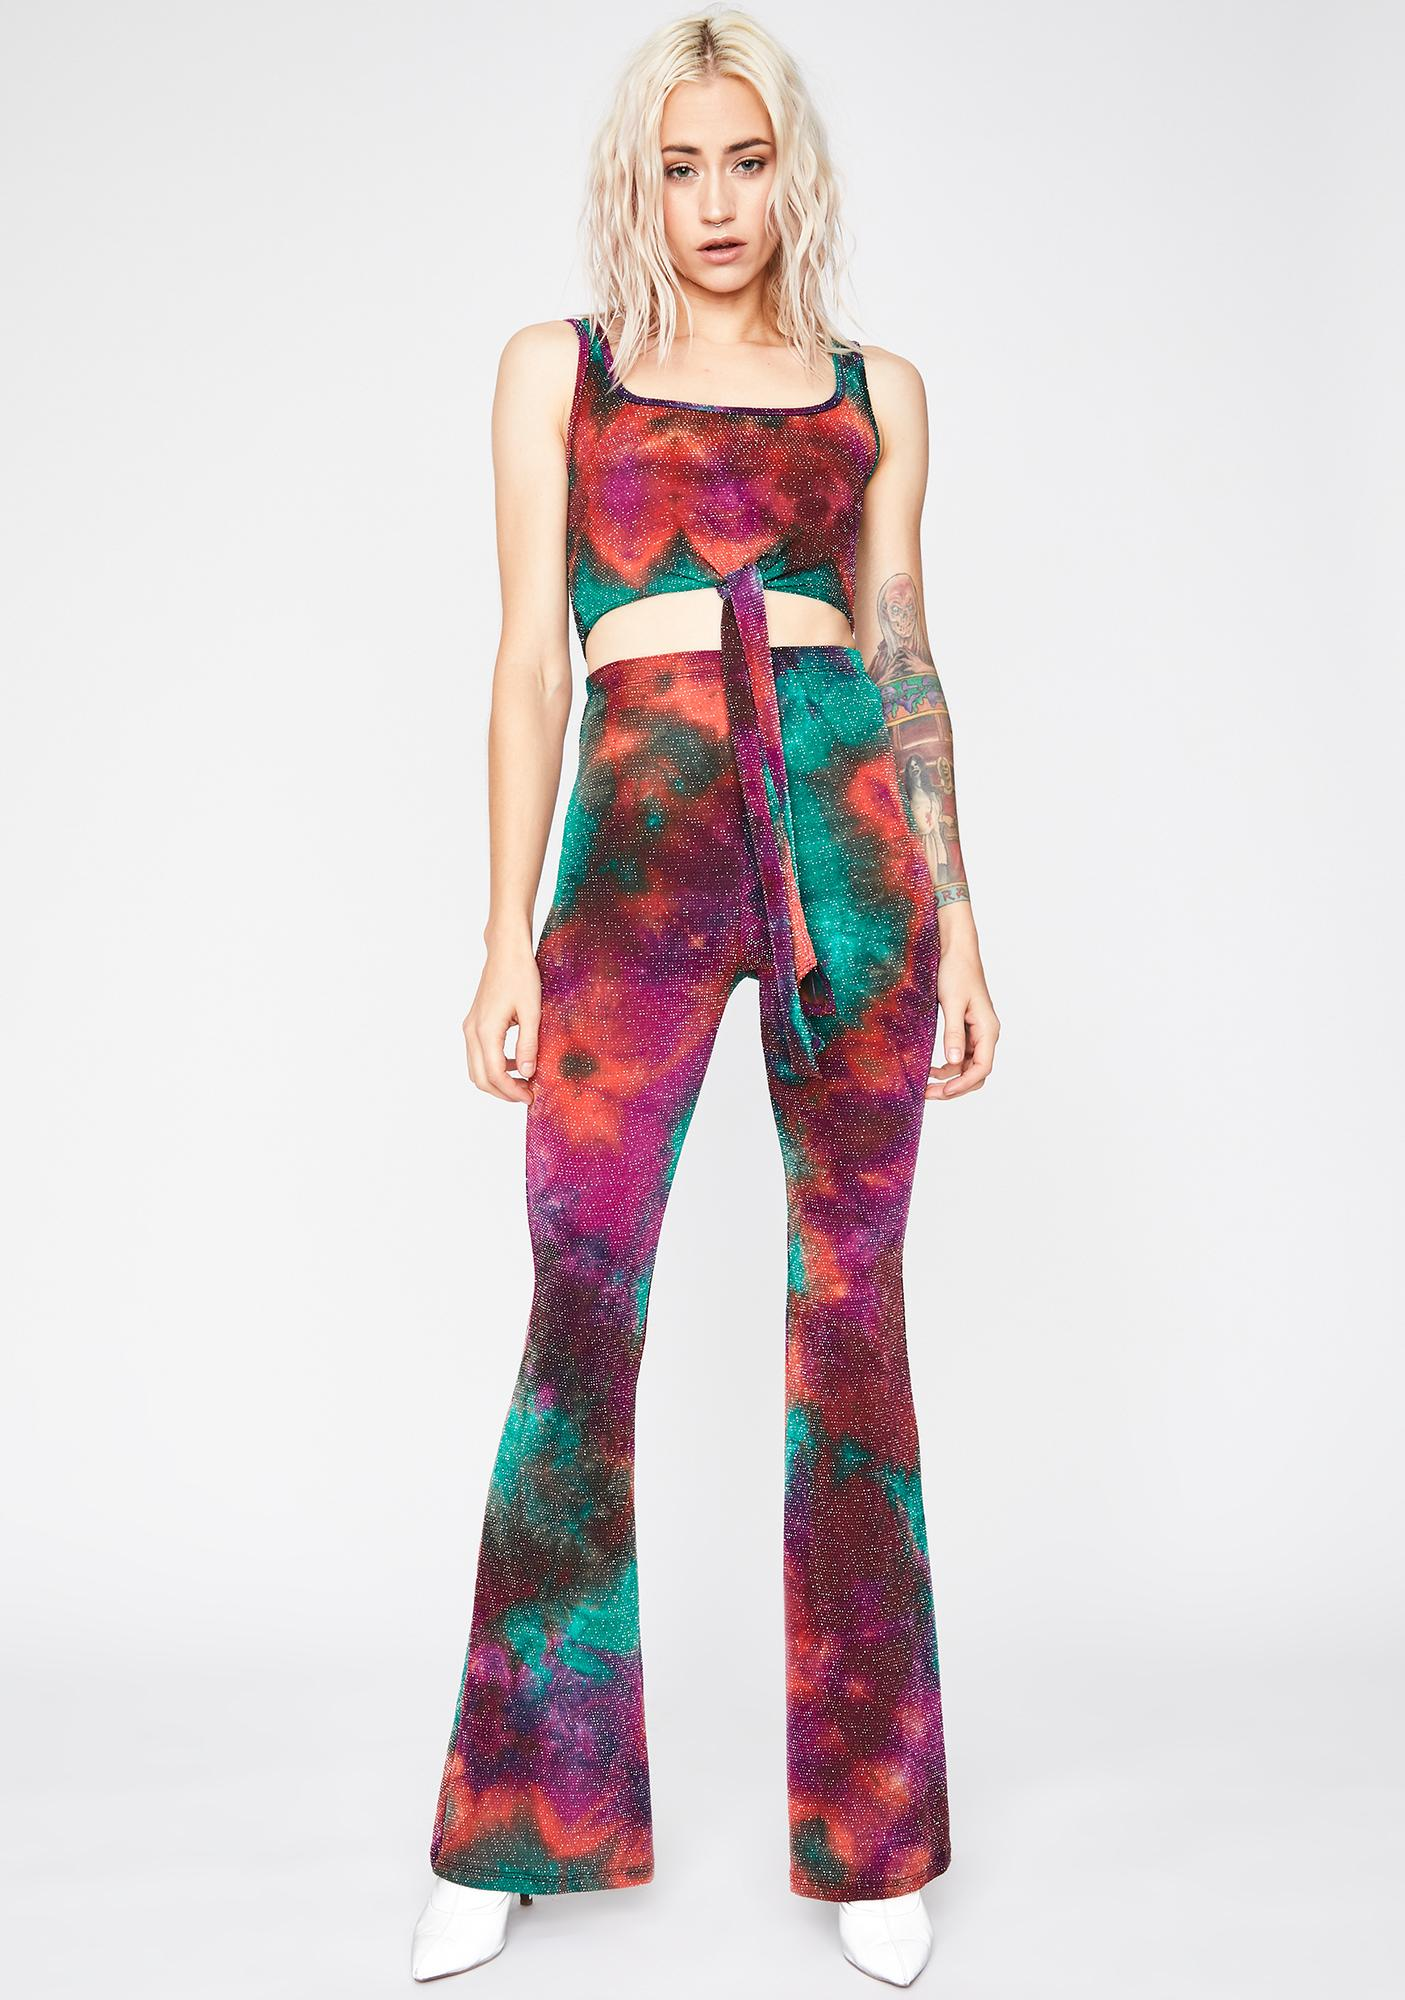 Ethereal Urges Tie Dye Pant Set